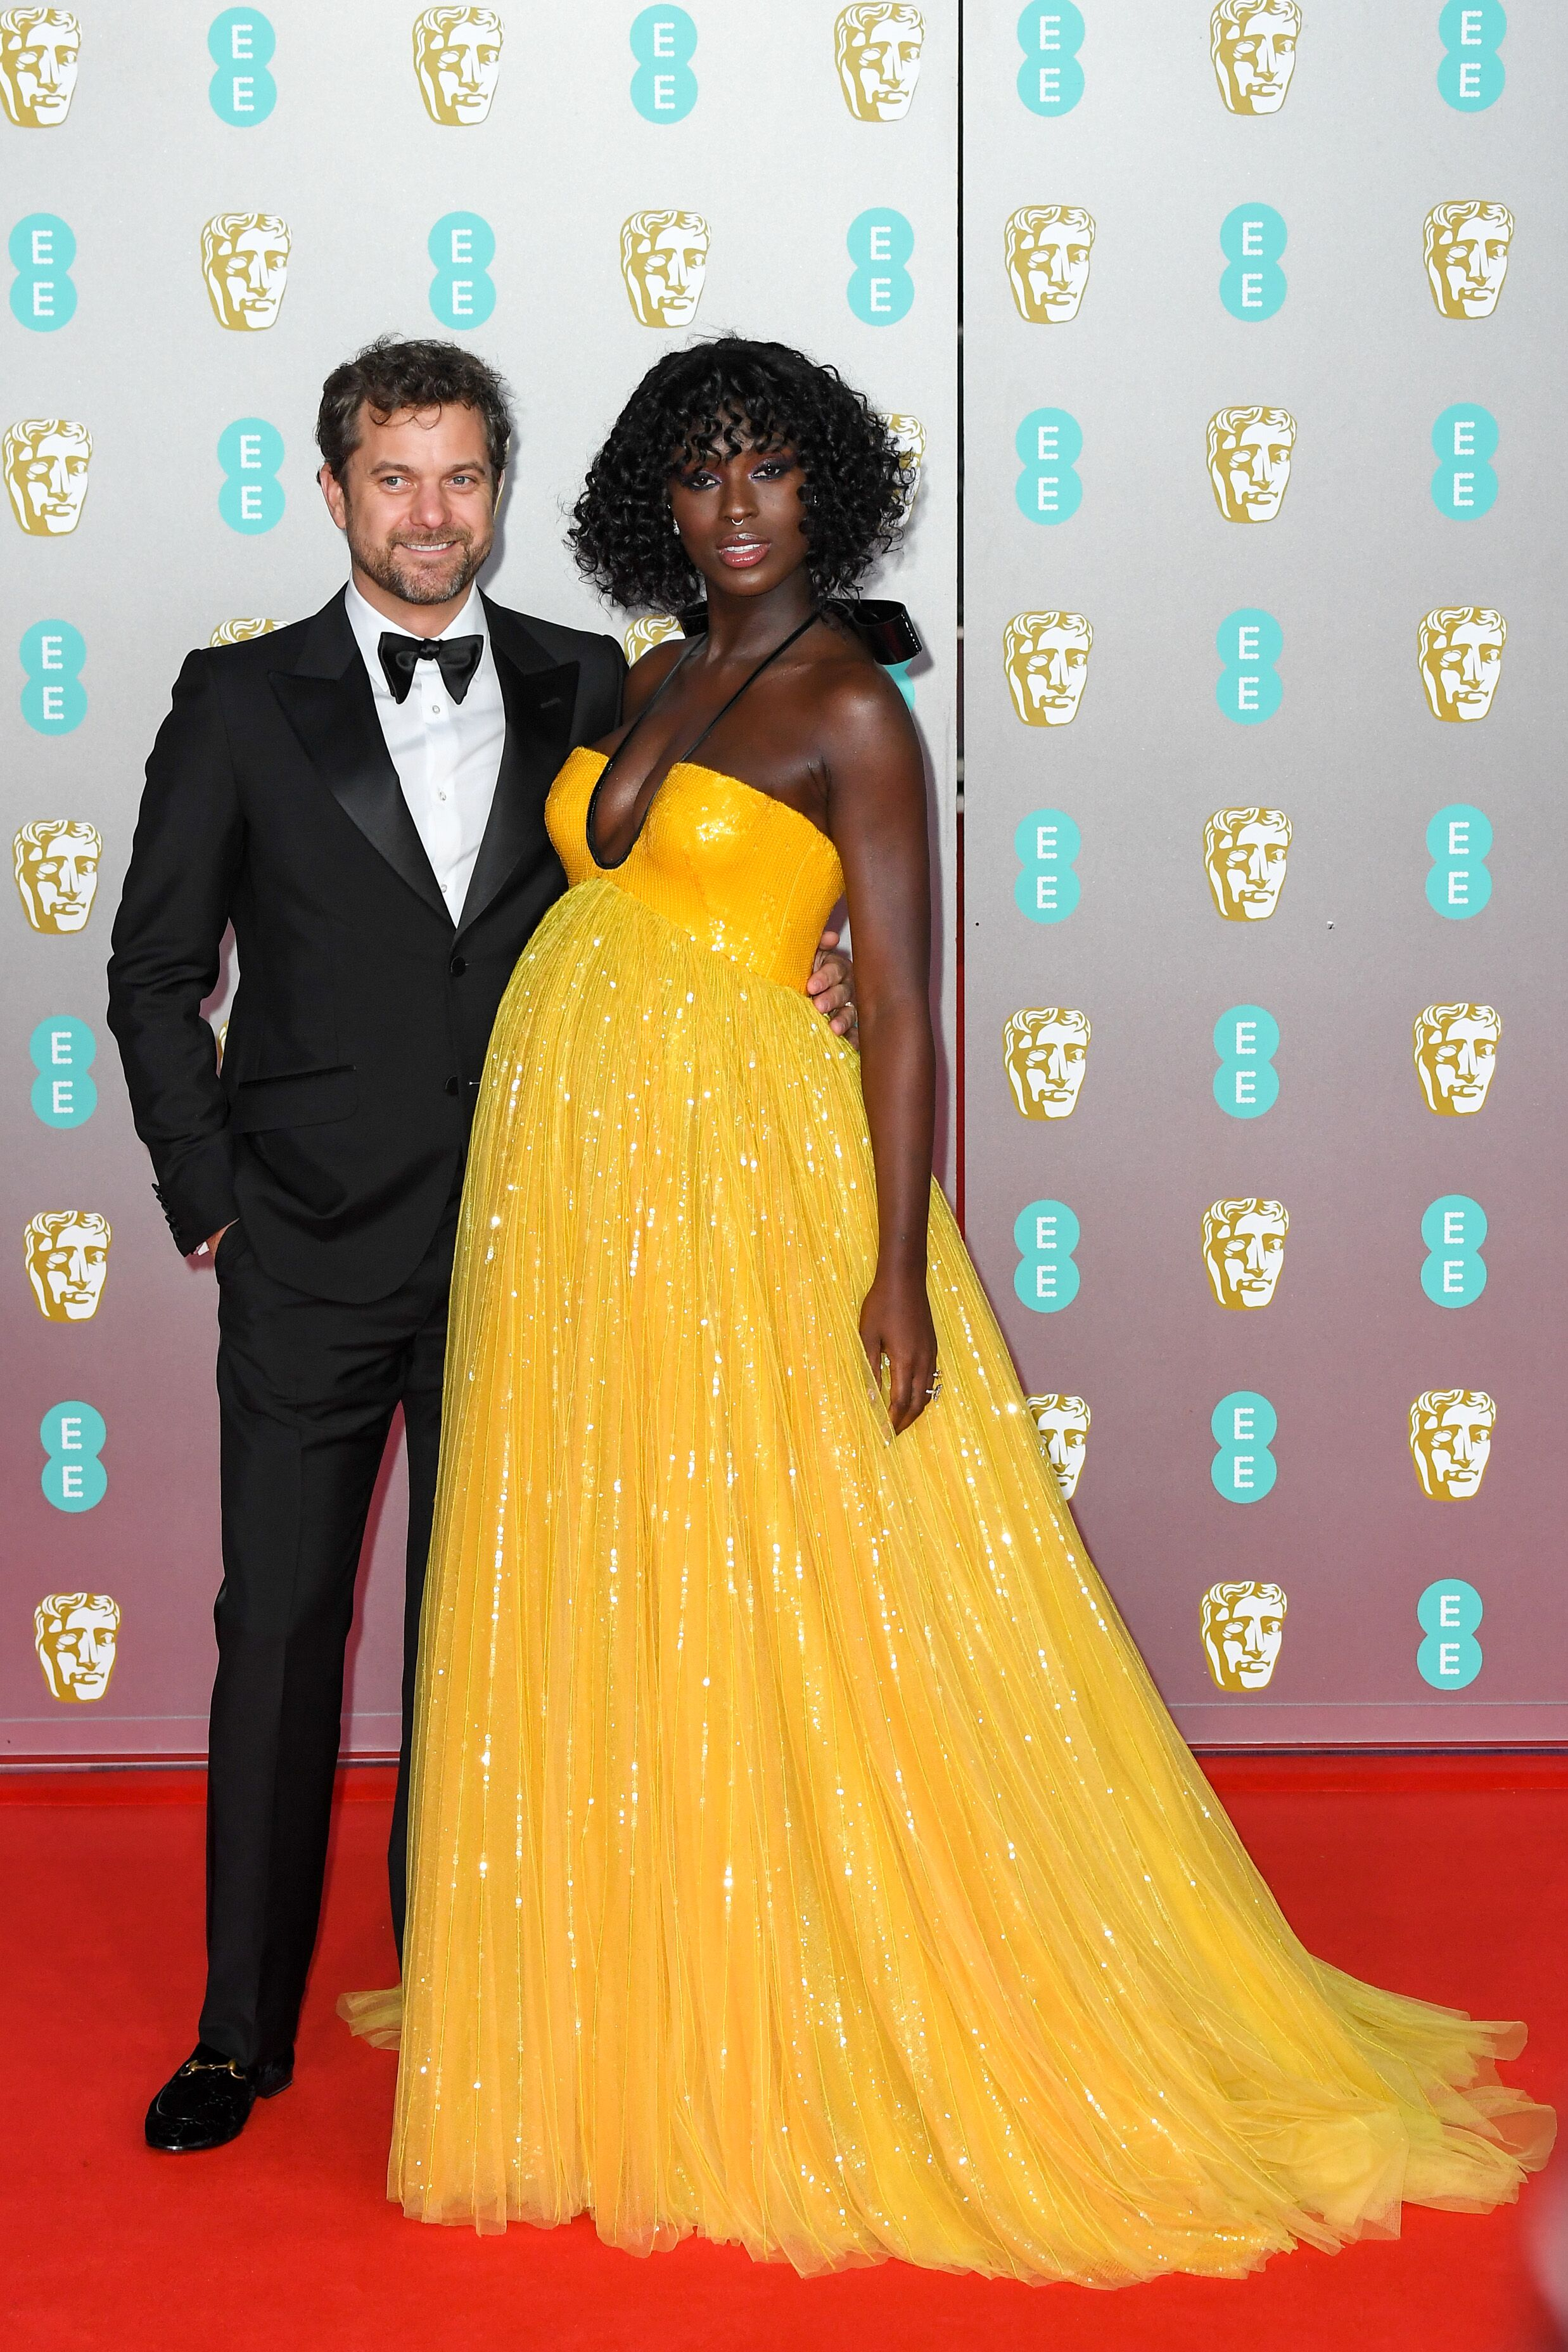 Jodie Turner-Smith and Joshua Jackson attend the EE British Academy Film Awards 2020 at Royal Albert Hall on February 02, 2020 in London, England. | Source: Getty Images